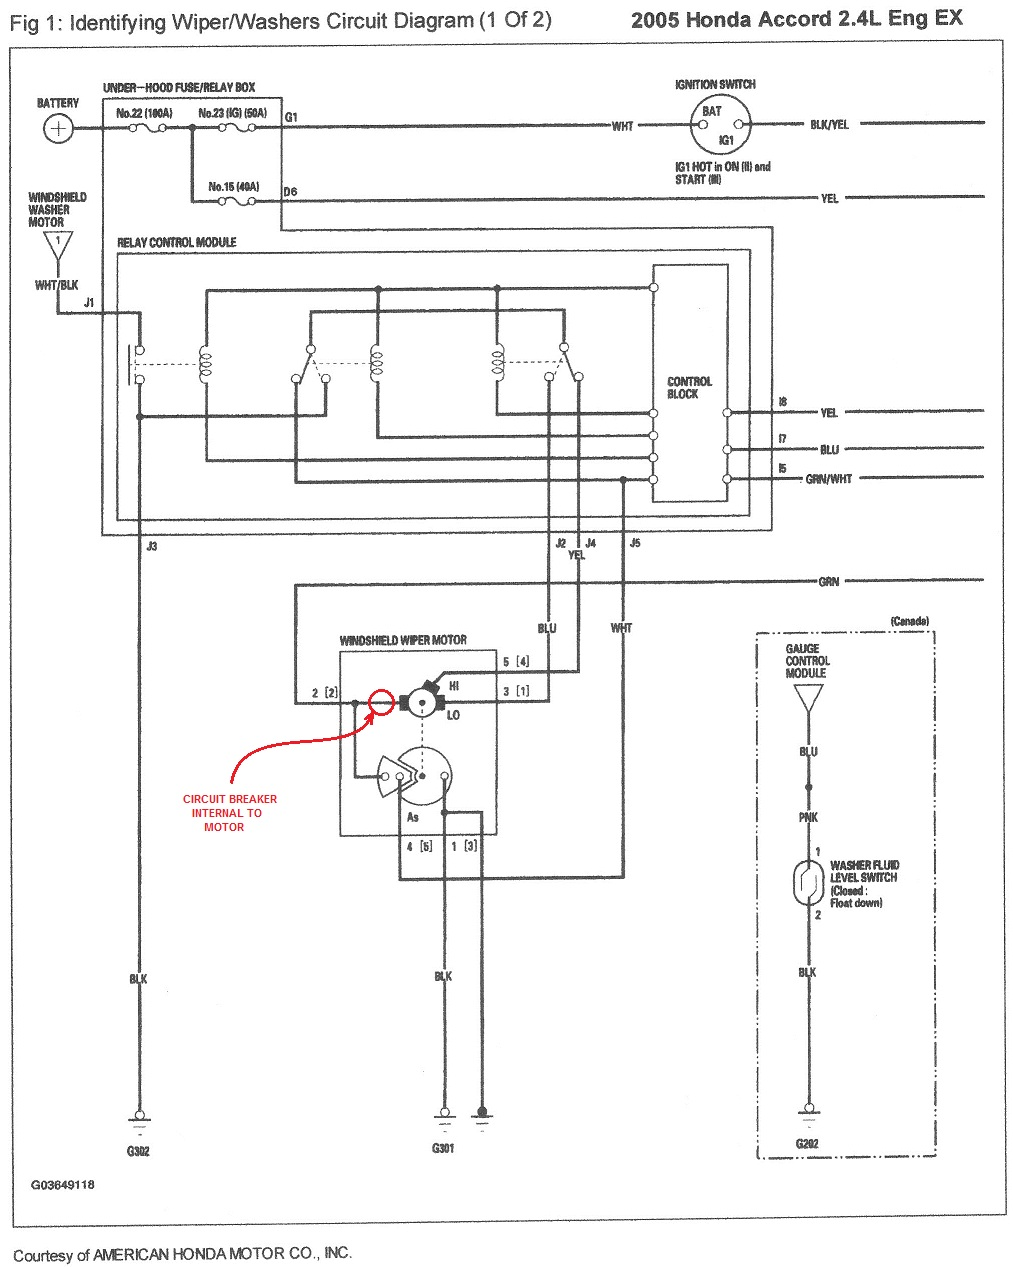 Wiper Motor Wiring Diagram from static-cdn.imageservice.cloud